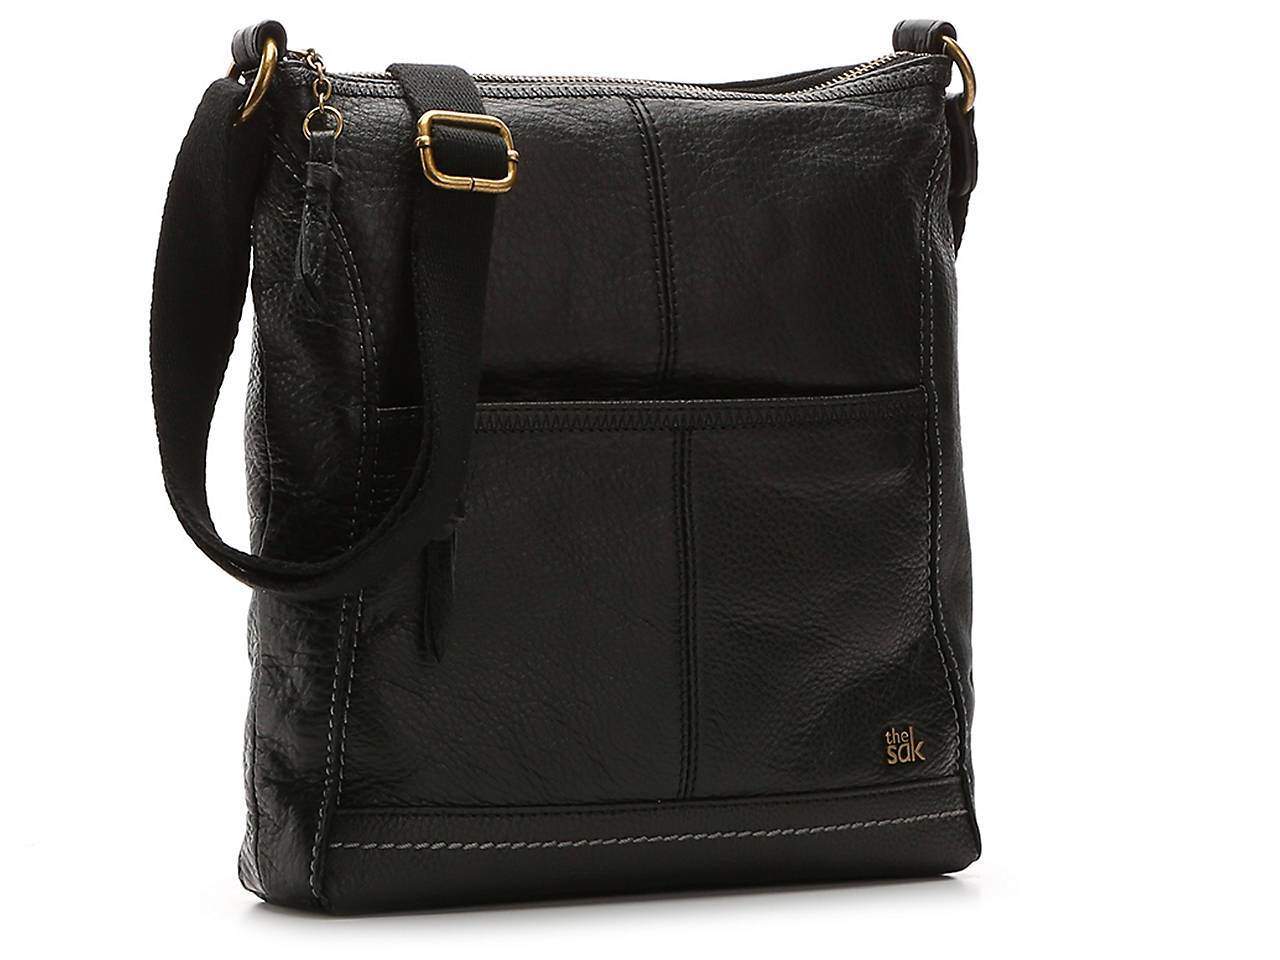 Iris Leather Crossbody Bag